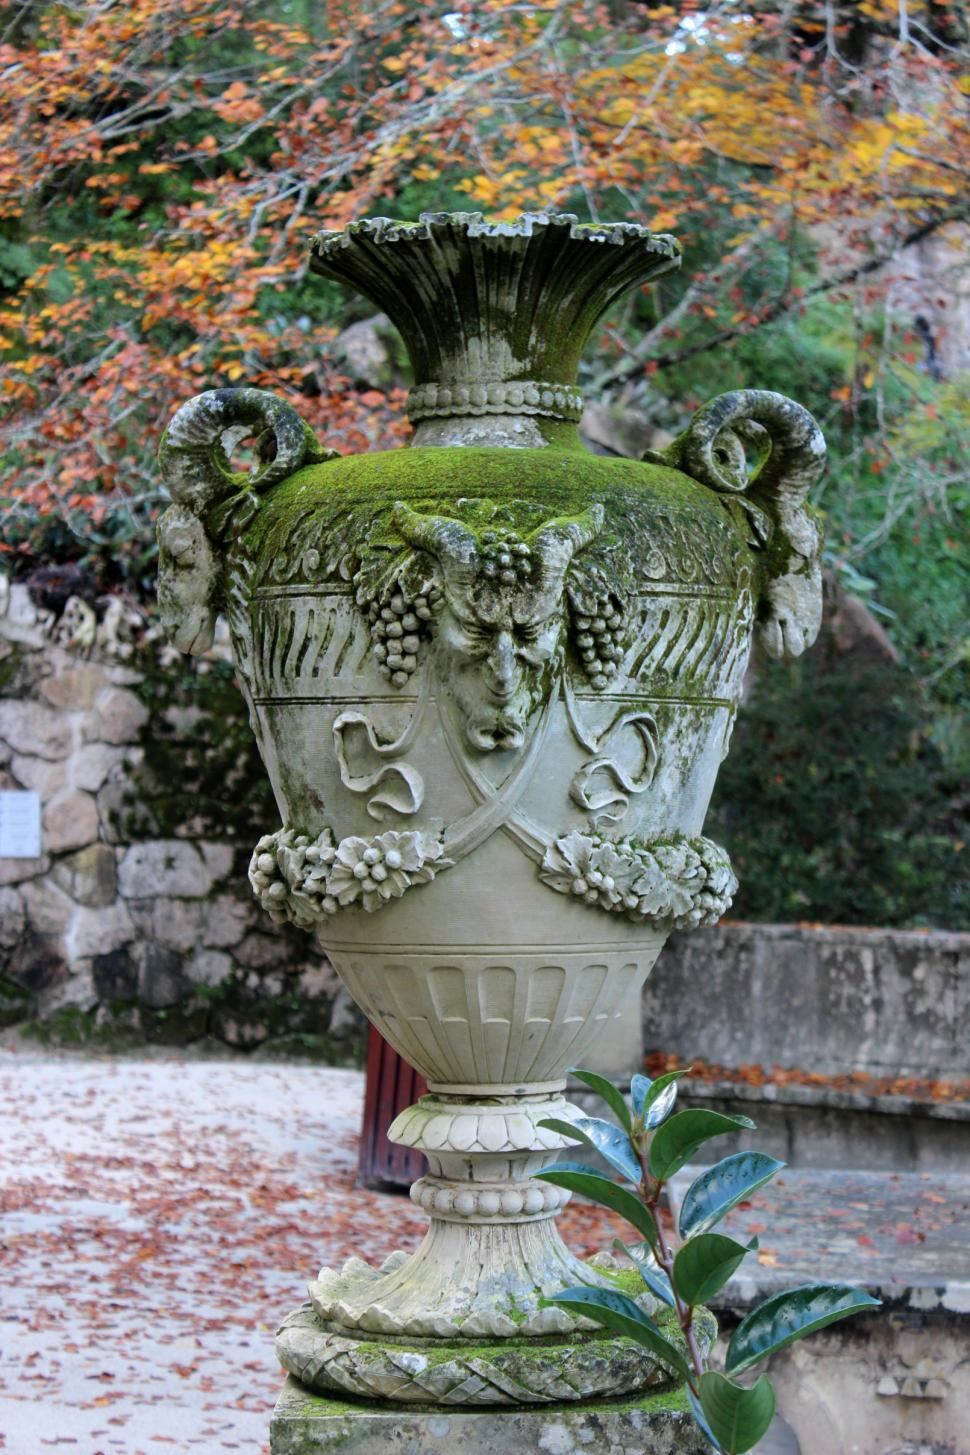 Download Free Stock HD Photo of Old Vase with Faun Face Online